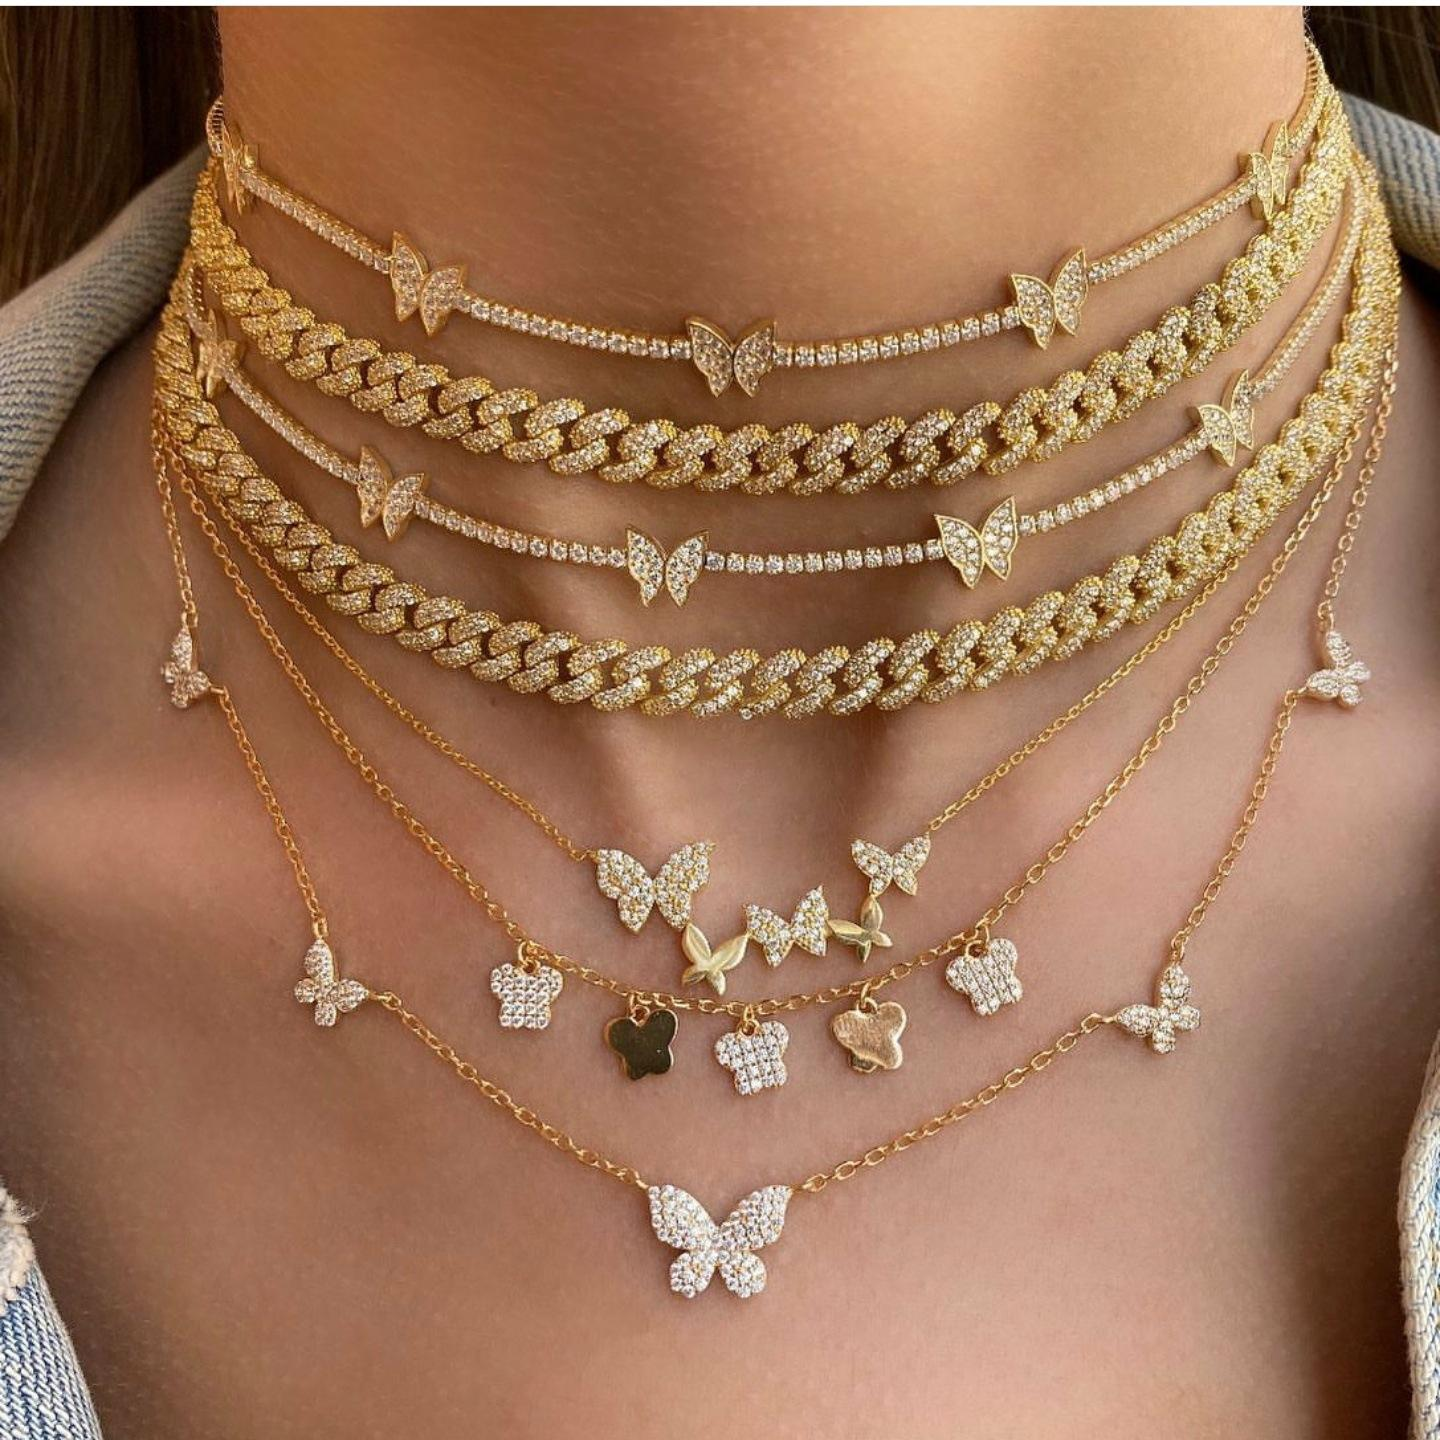 Barlaycs 2021 Statement Stainless Steel Zircon Gold Tennis Chain Butterfly Layered Choker for Women Jewelry Pendant Necklace